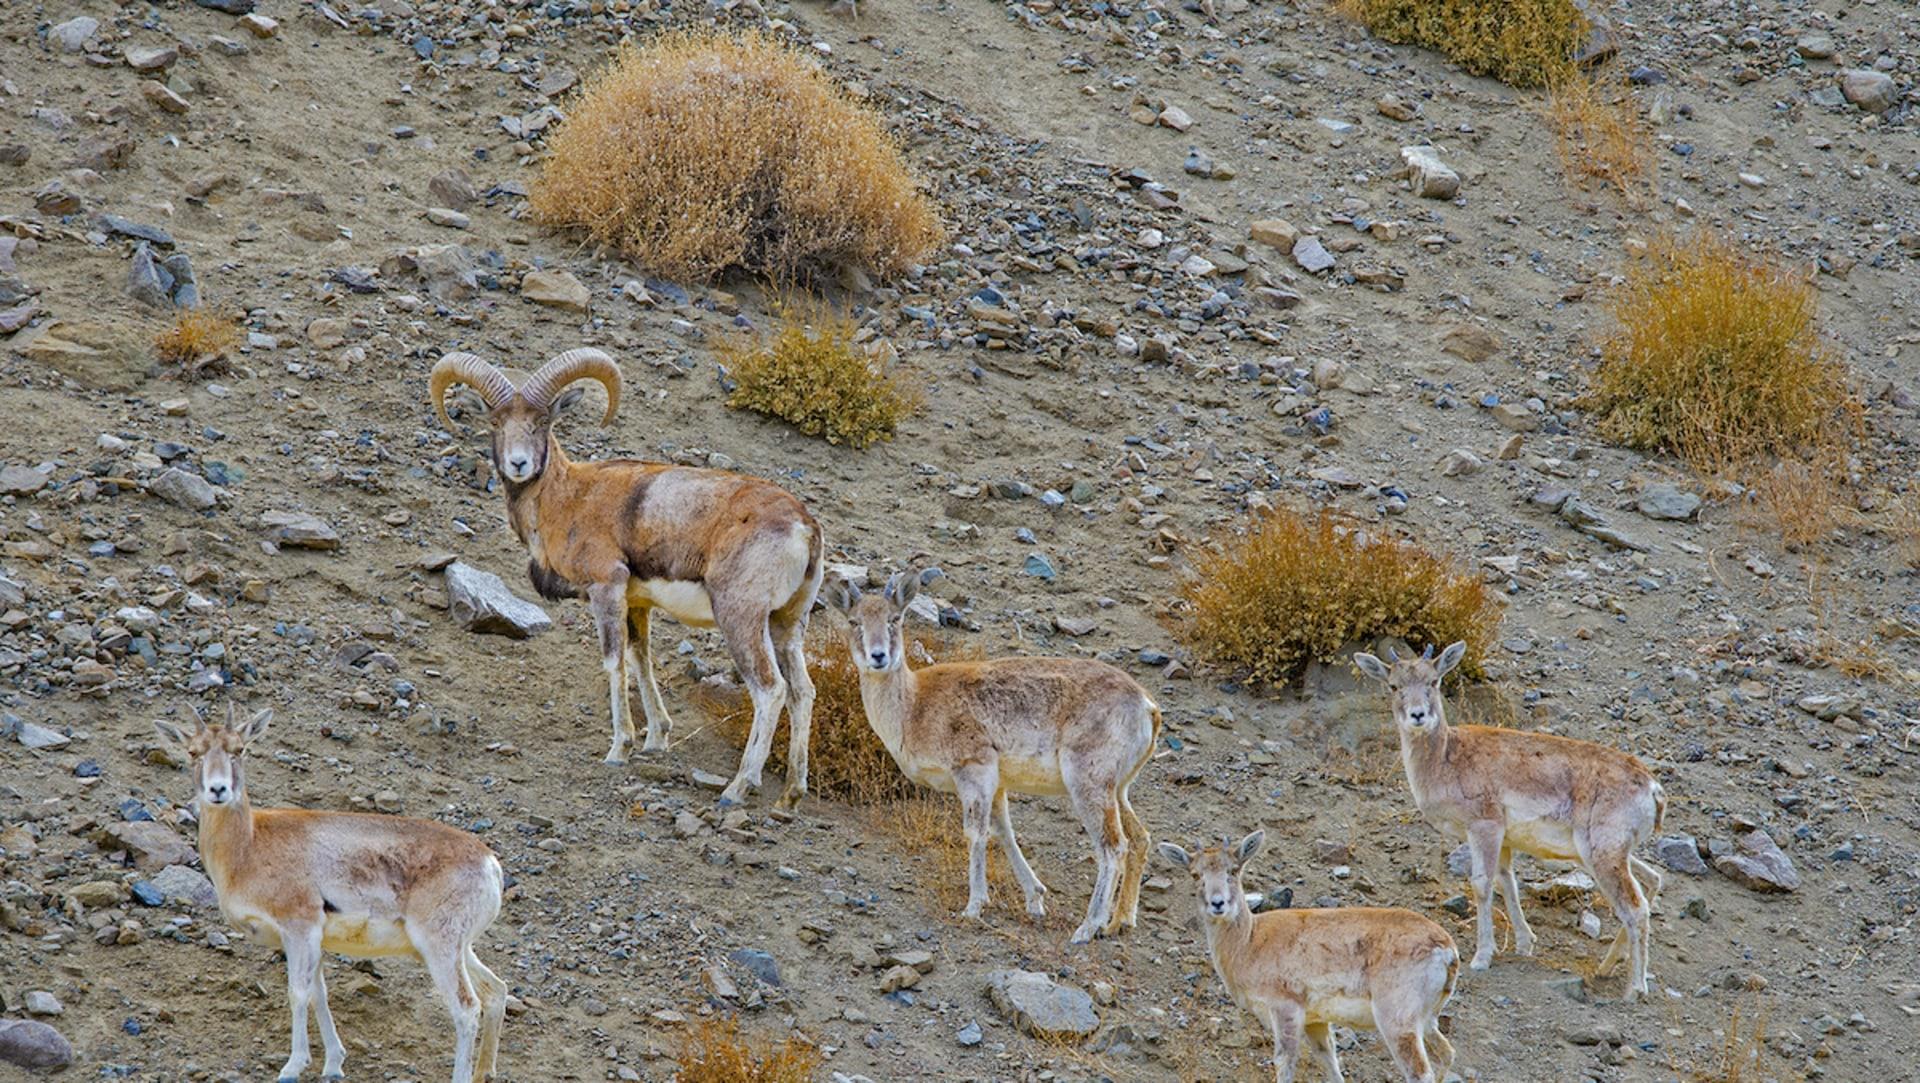 Cross Connections: The Story of Humans, Urial, and their Kin